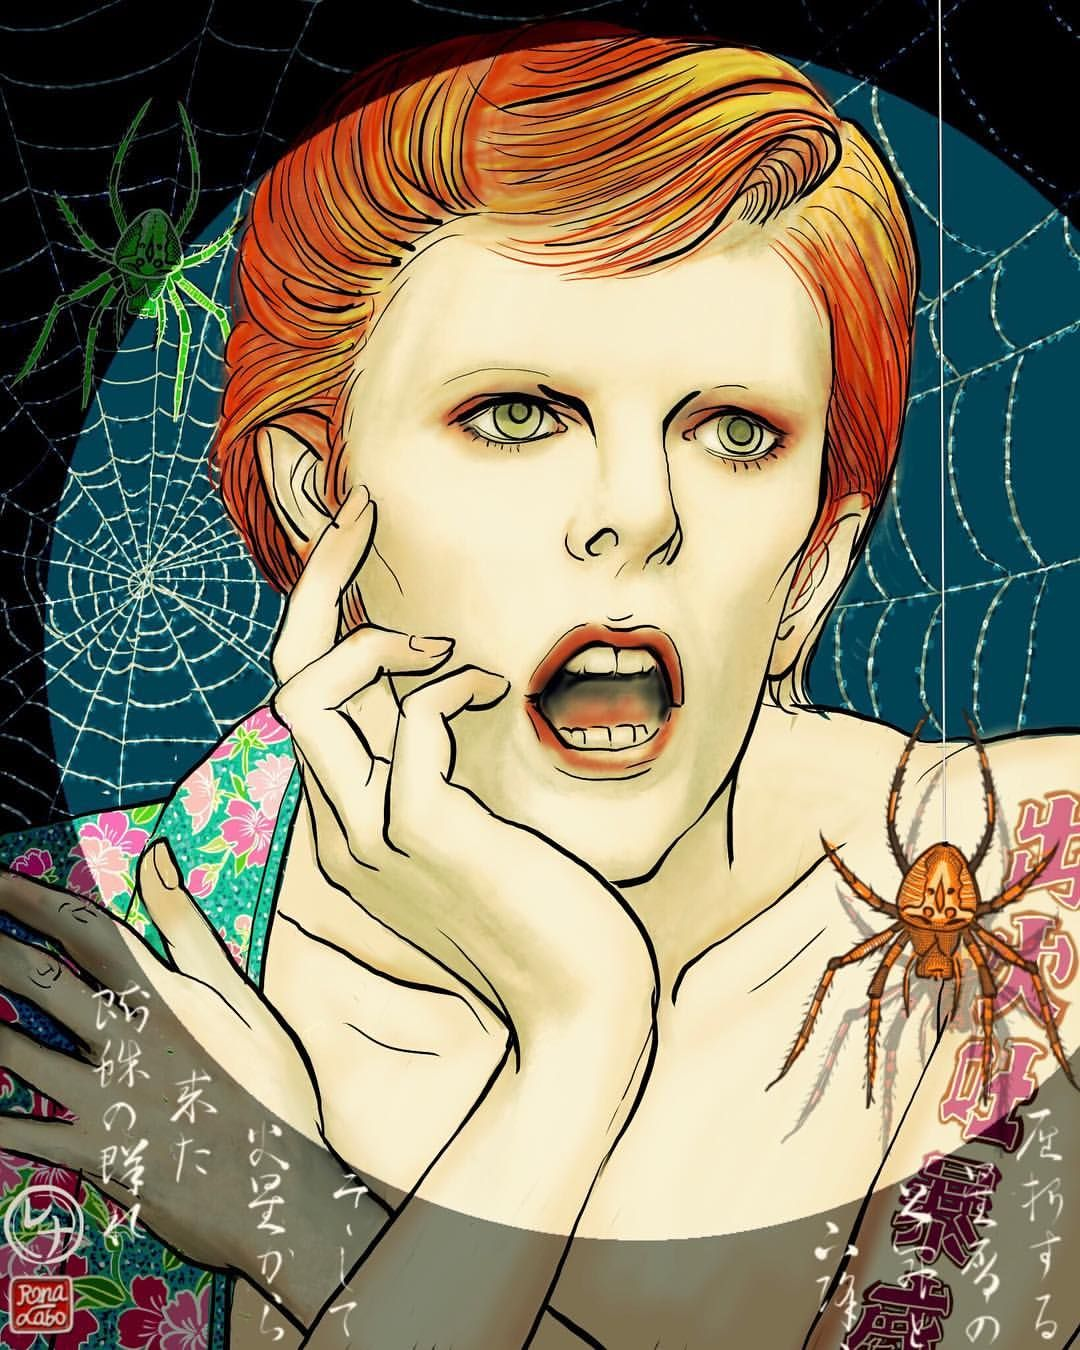 Ziggy Stardust and the Spiders from Mars | David Bowie Art by Rena ...